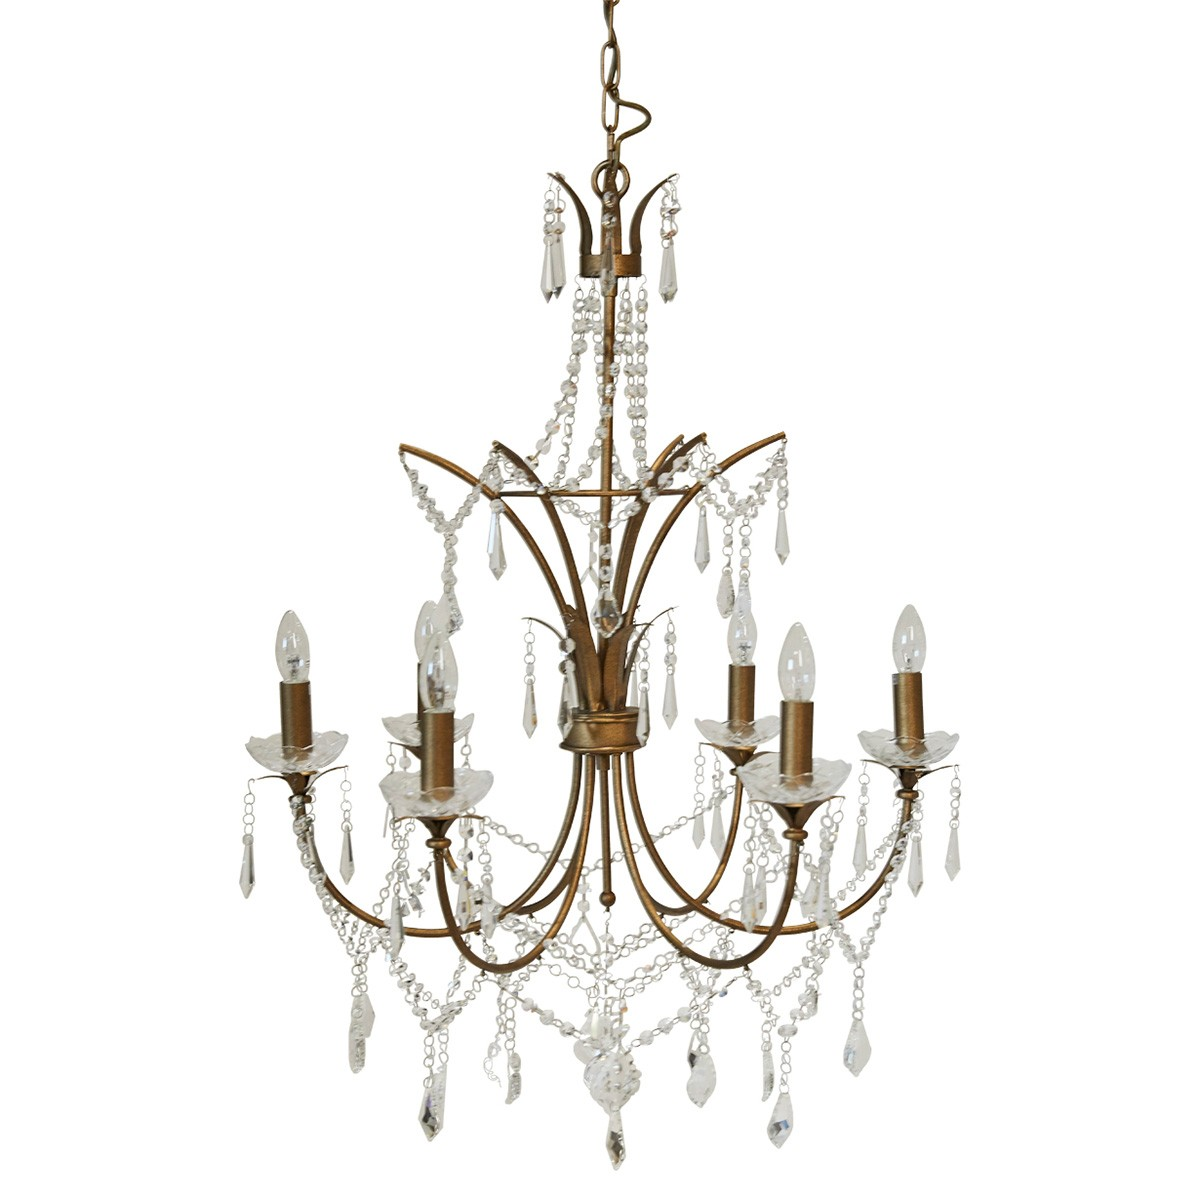 St Pierre Iron & Glass Chandelier, 6 Arm